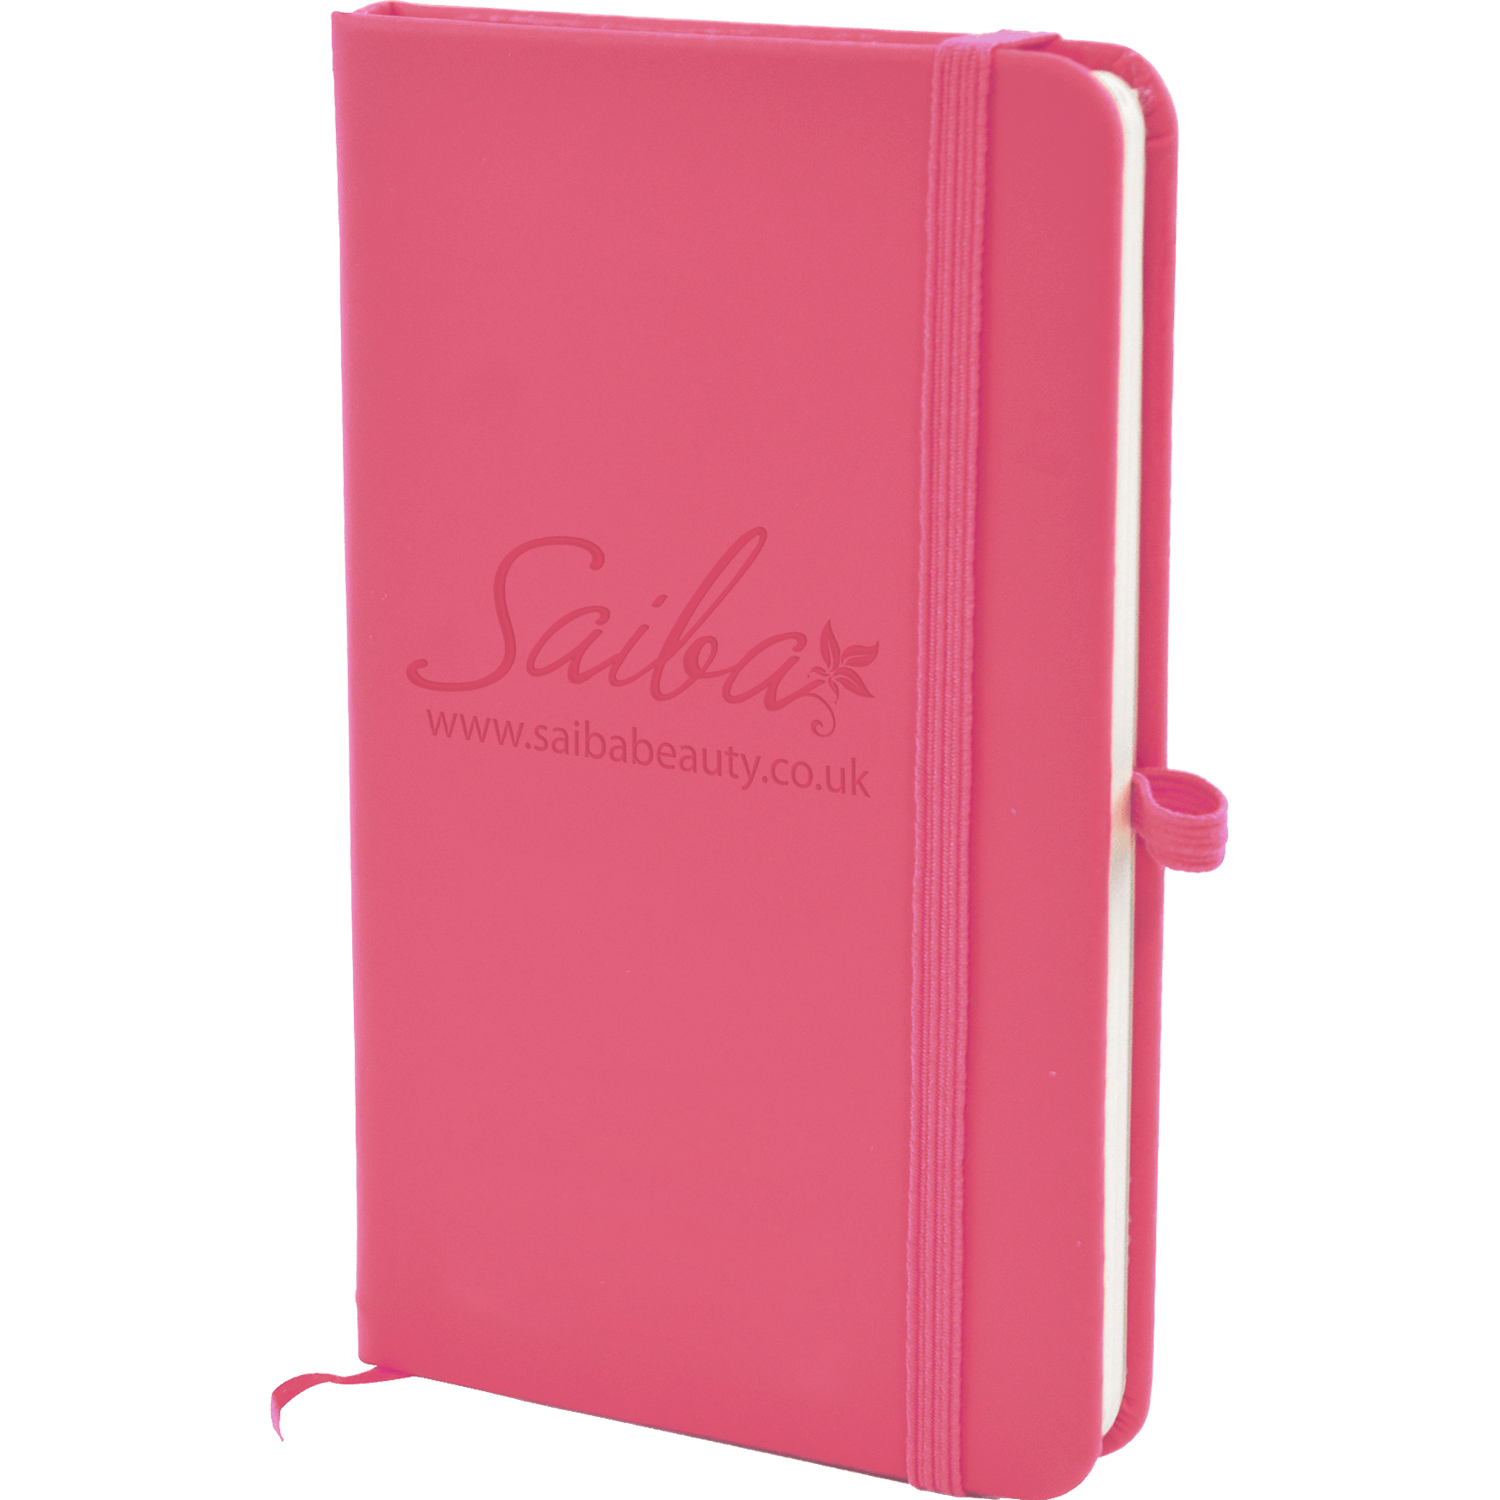 A6 Debossed Soft Touch Lined Notebook